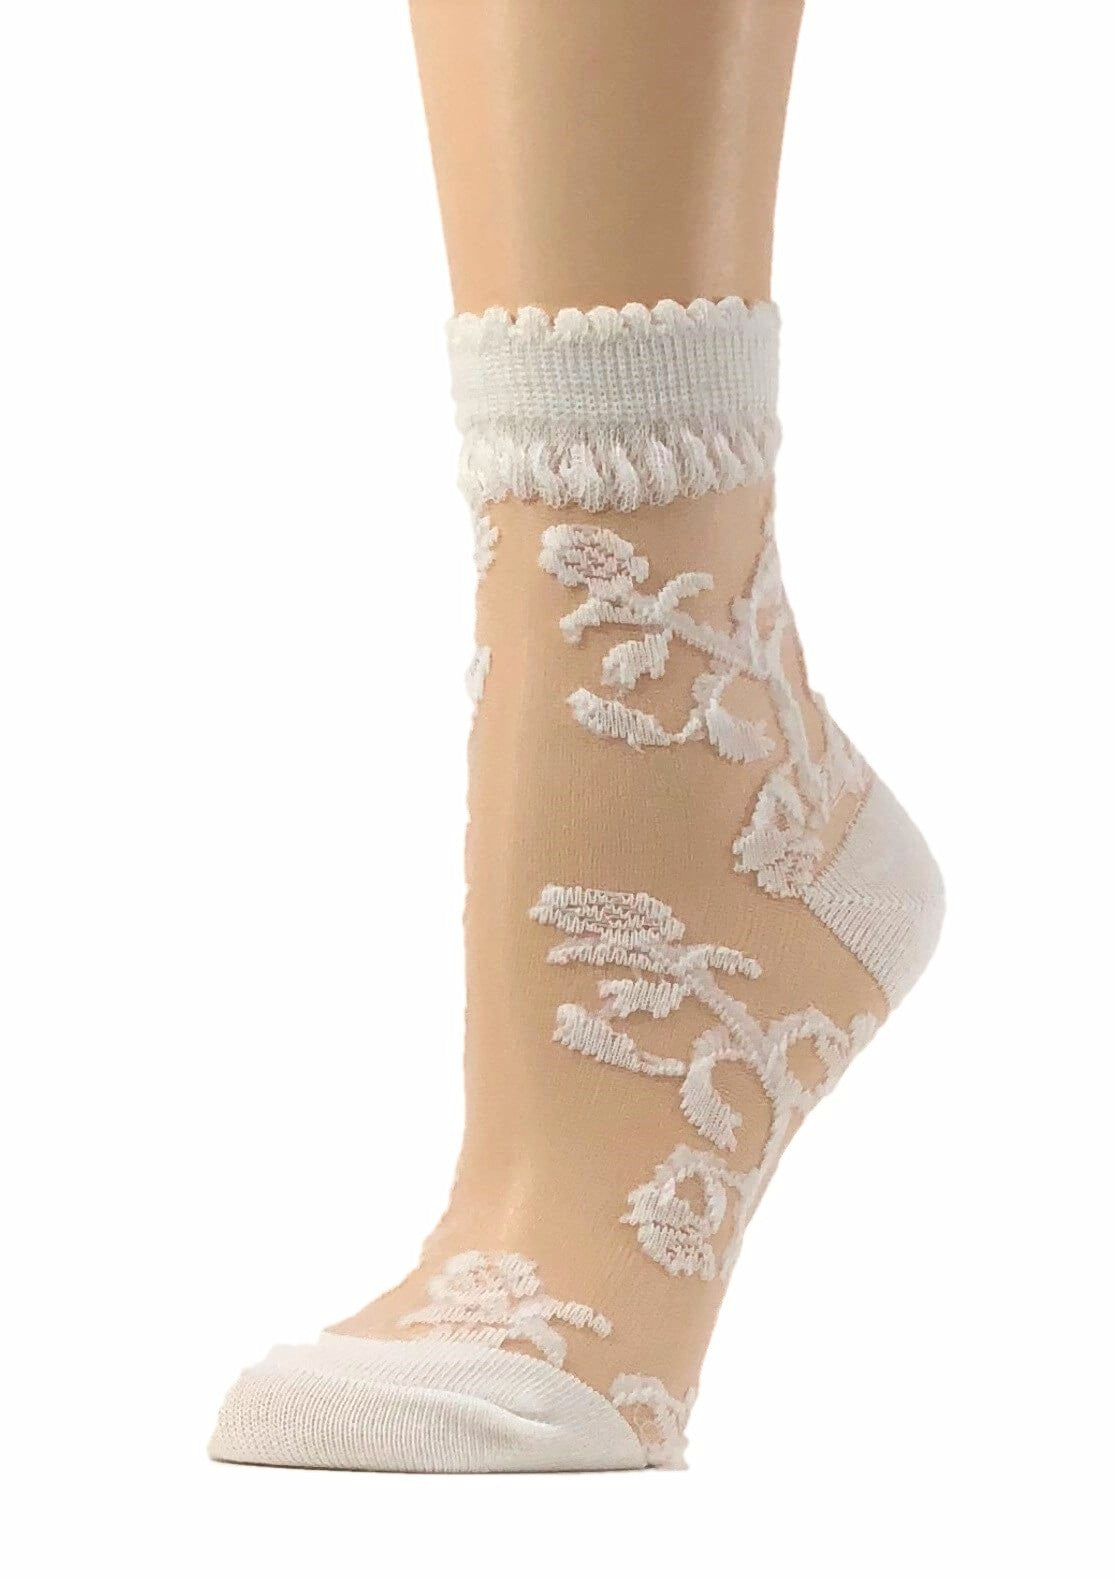 Snazzy White Sheer Socks - Global Trendz Fashion®